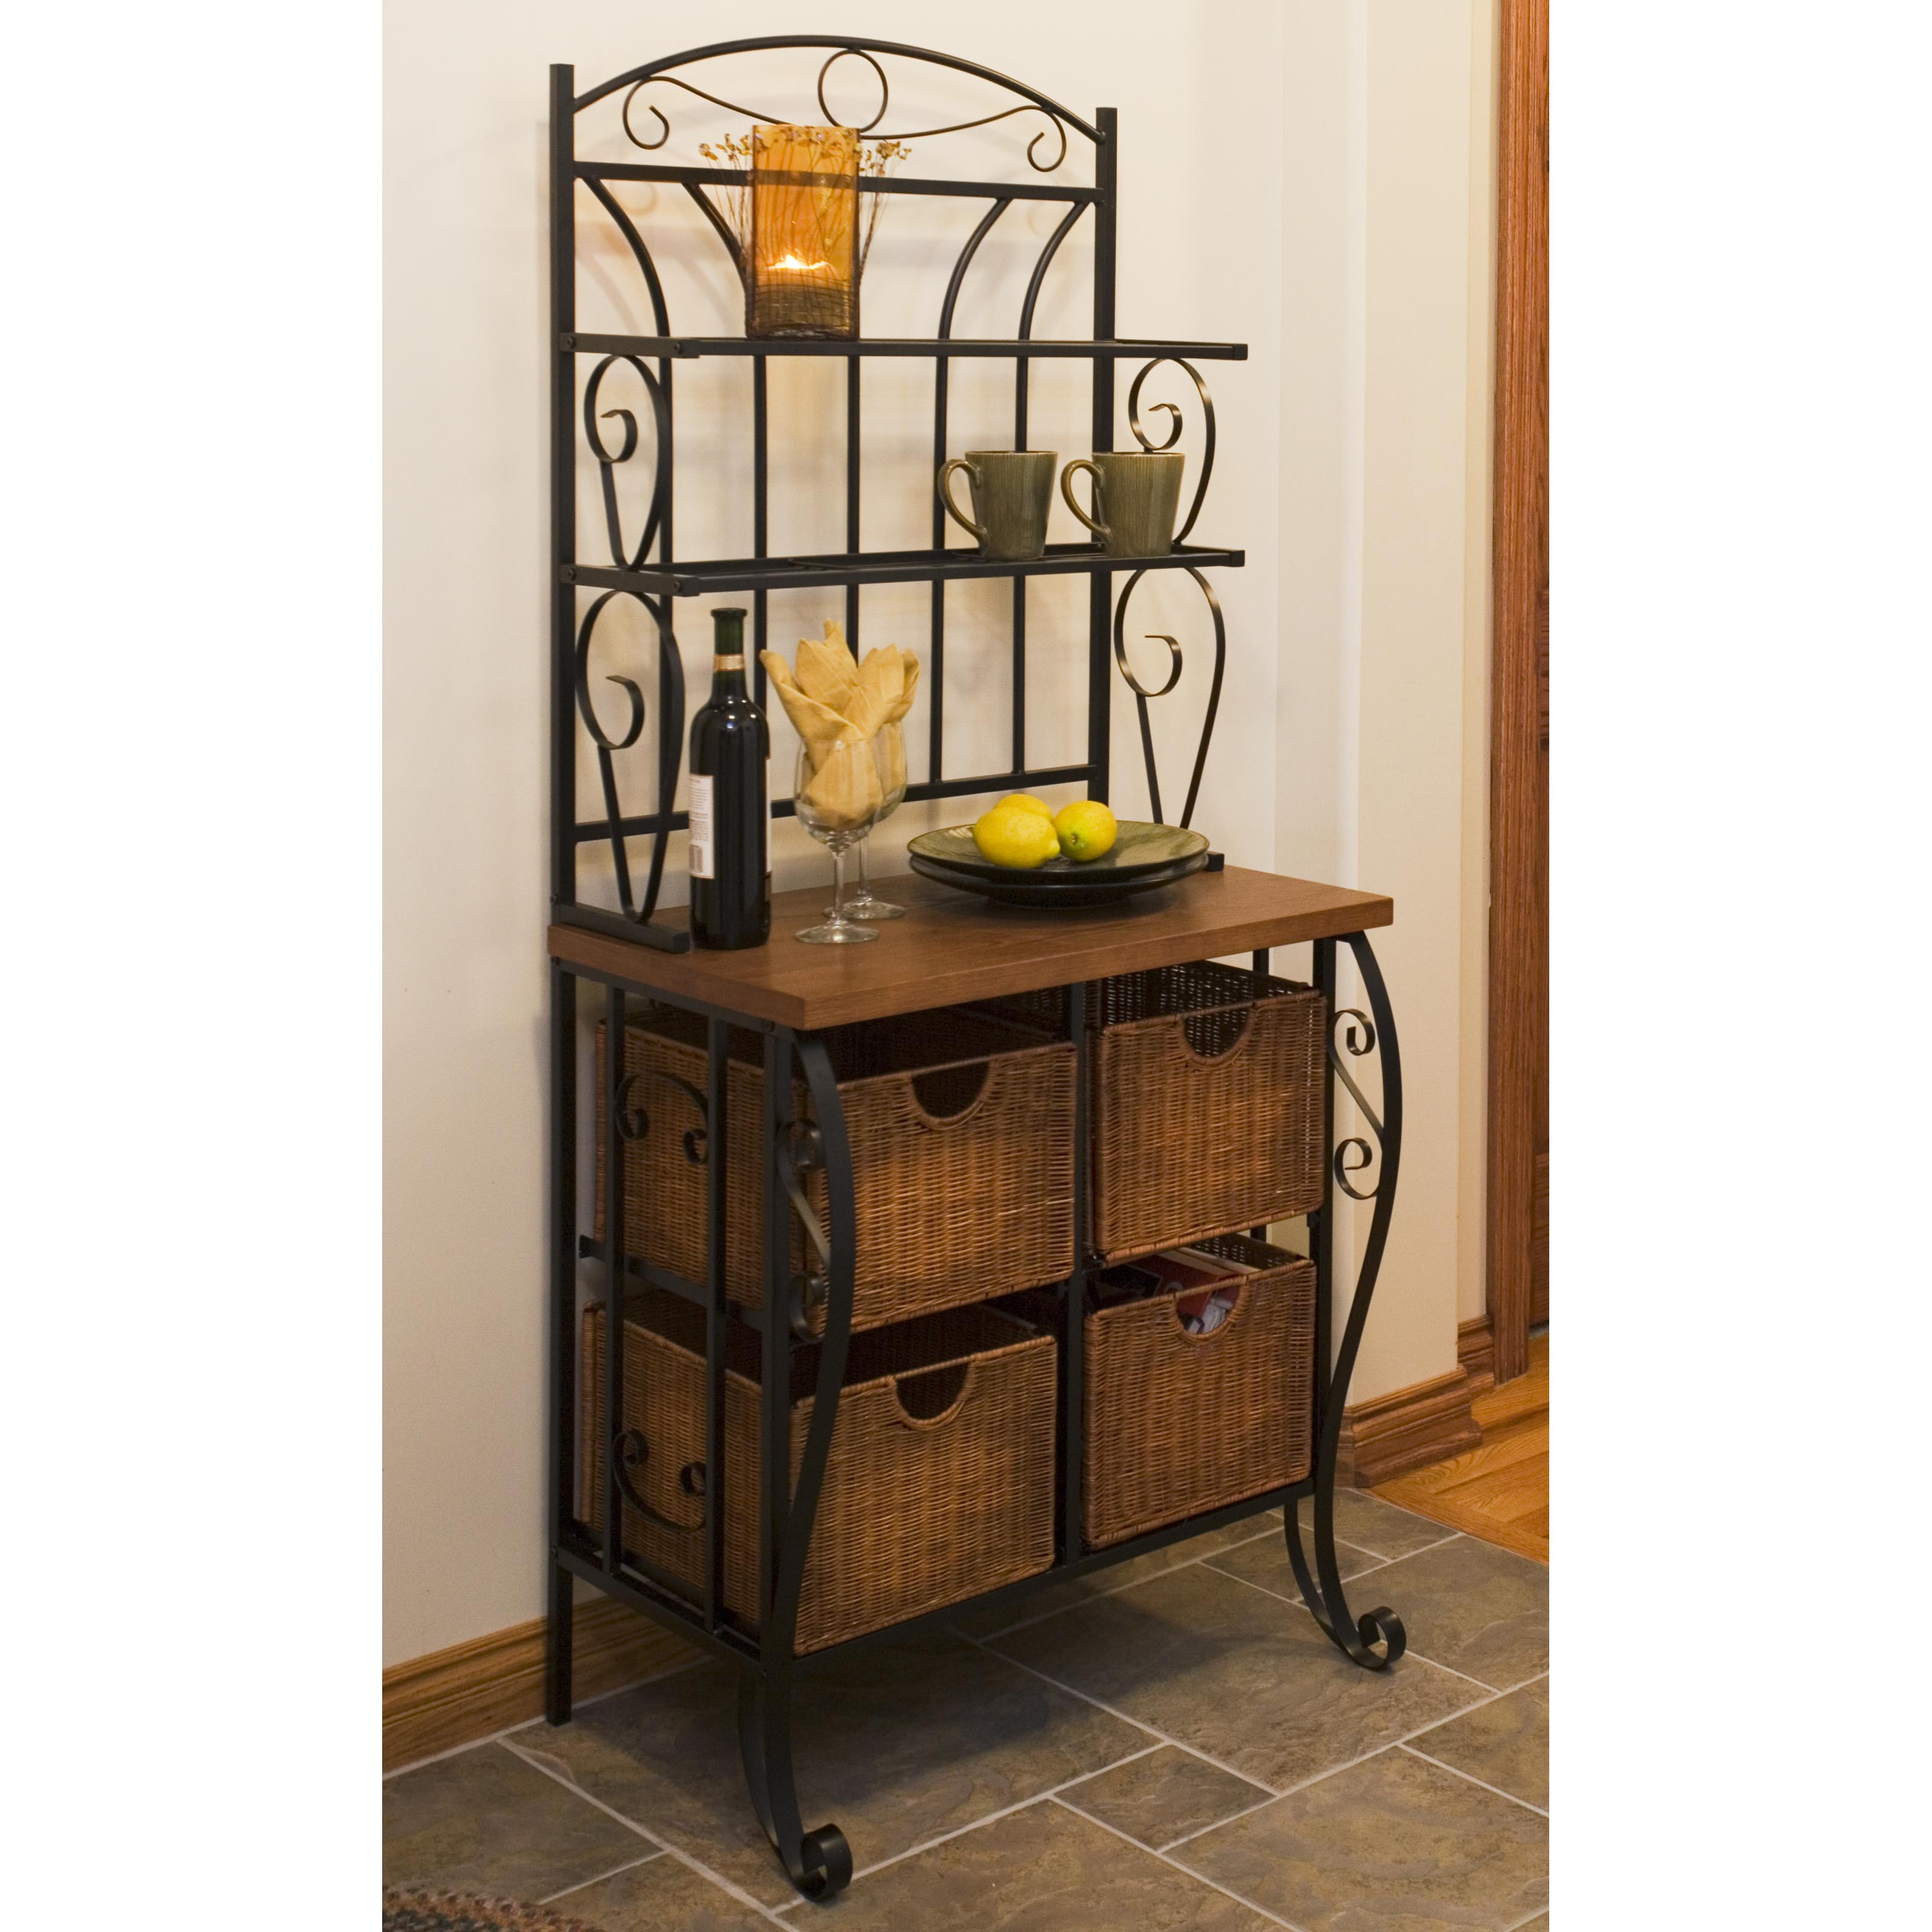 bakers upton iron home drawers free and belize overstock rack garden product shipping today the nomad with wicker curated